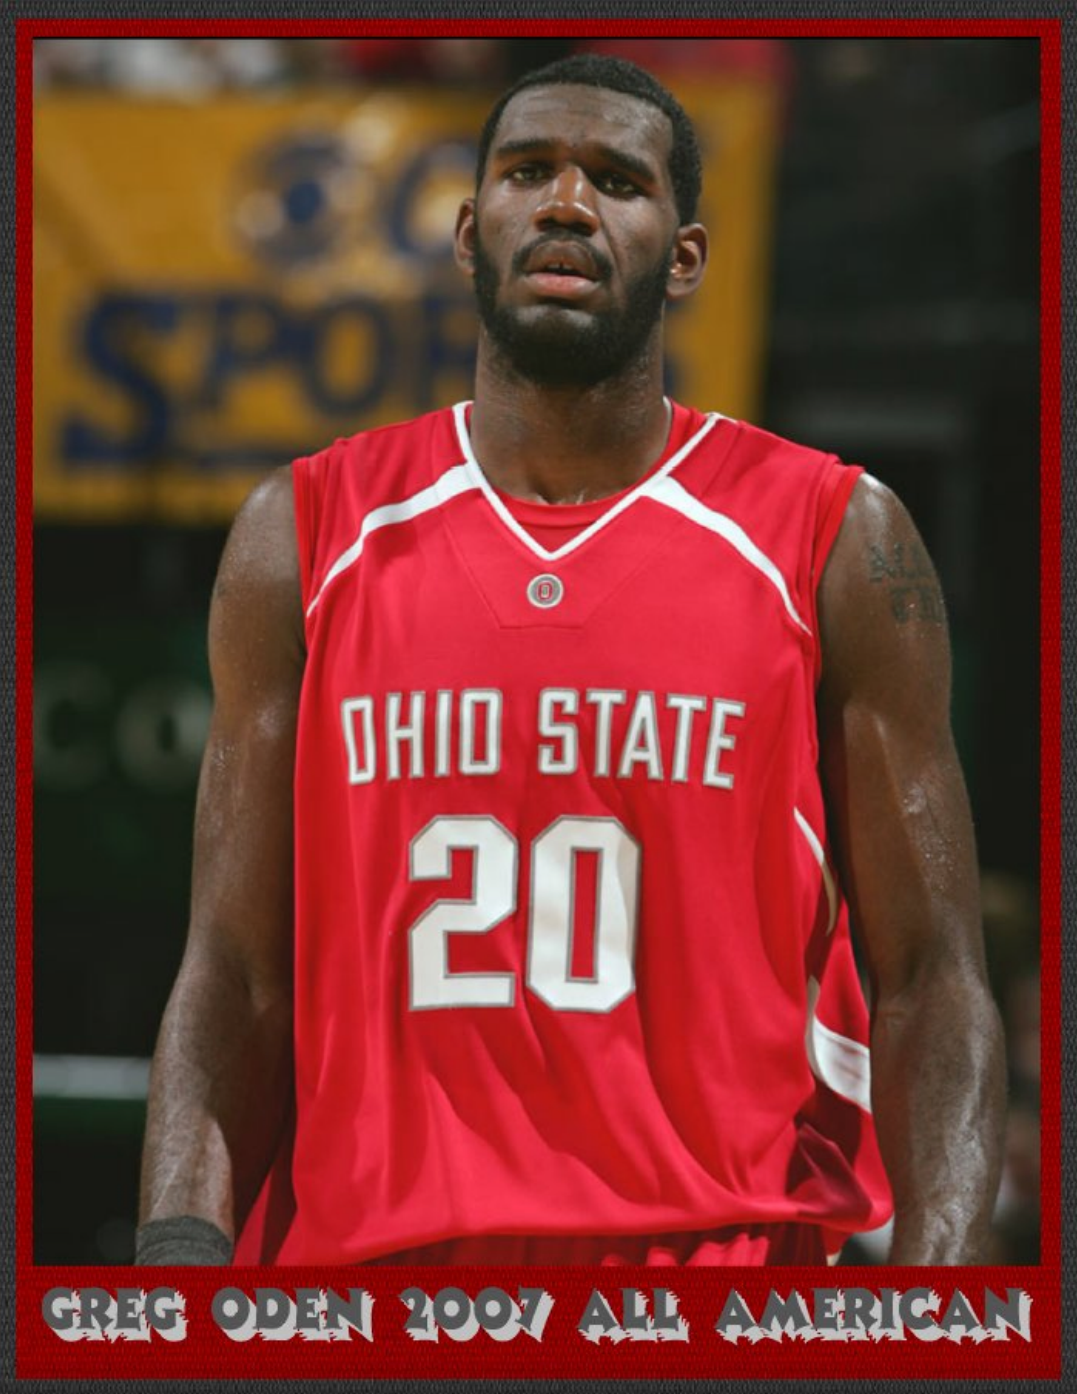 GREG ODEN 2007 ALL AMERICAN